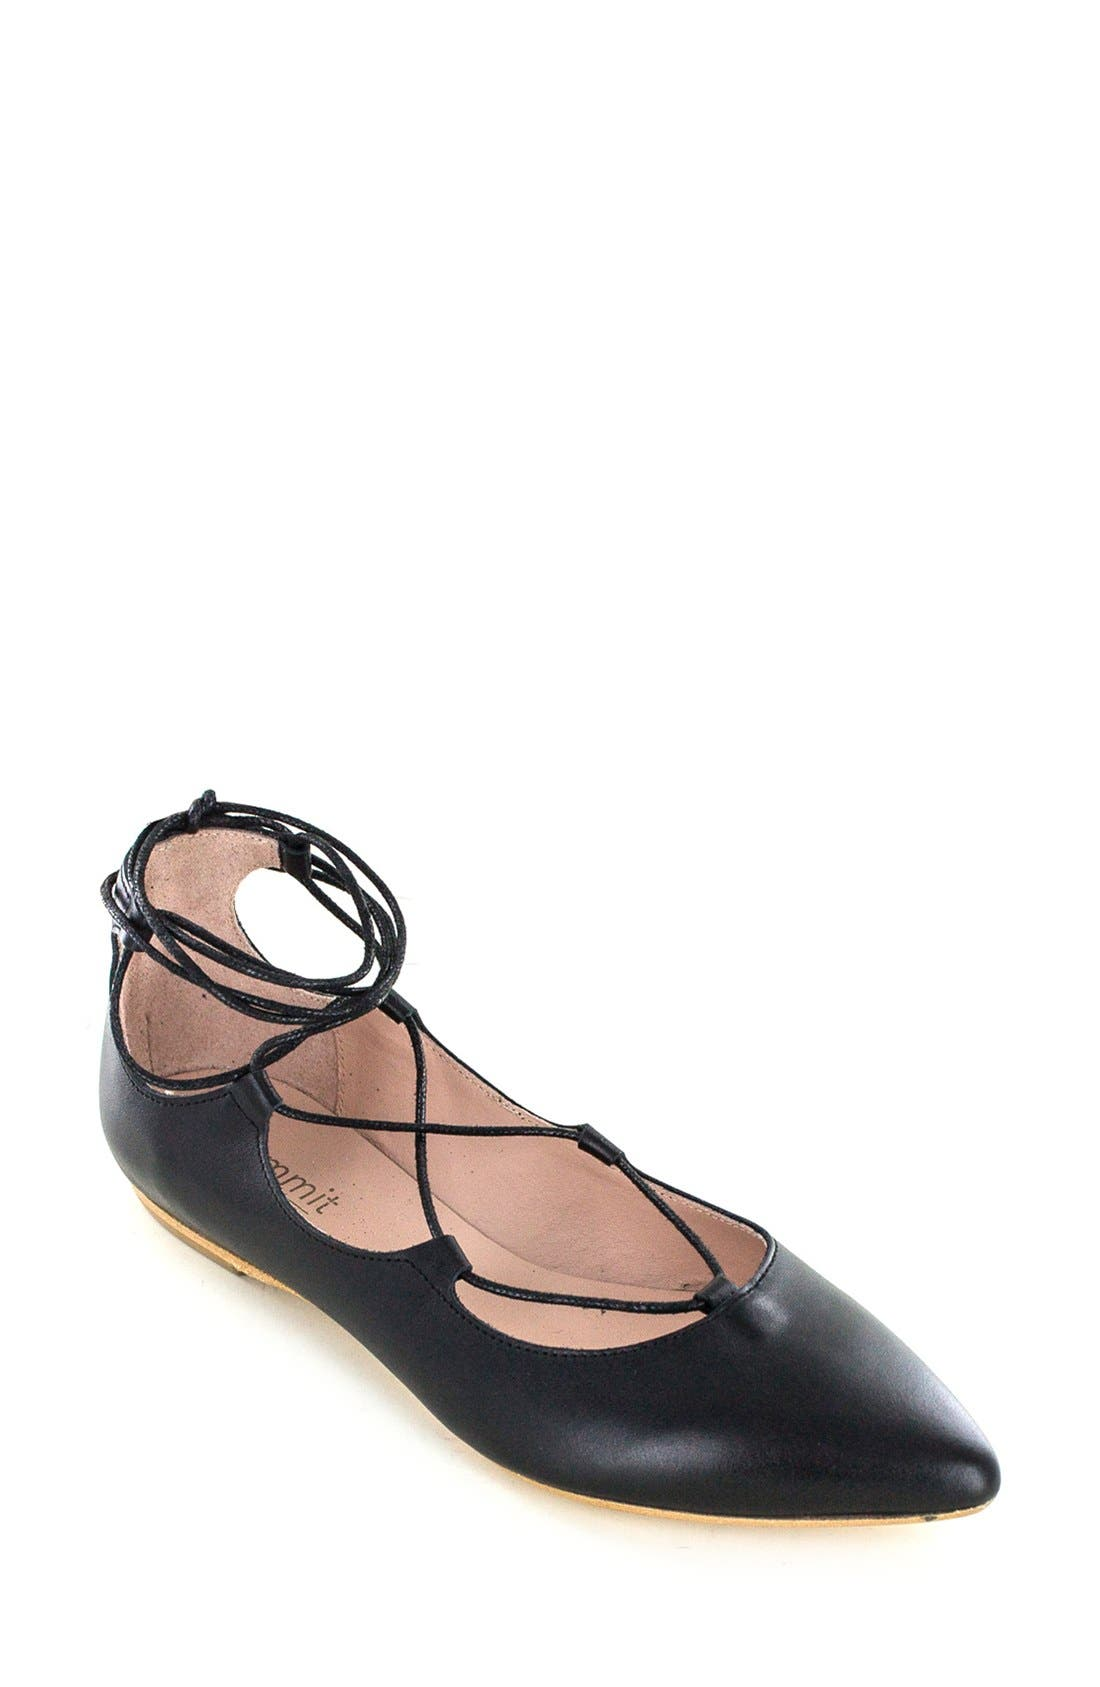 Alternate Image 1 Selected - Summit 'Karena' Flat (Women)